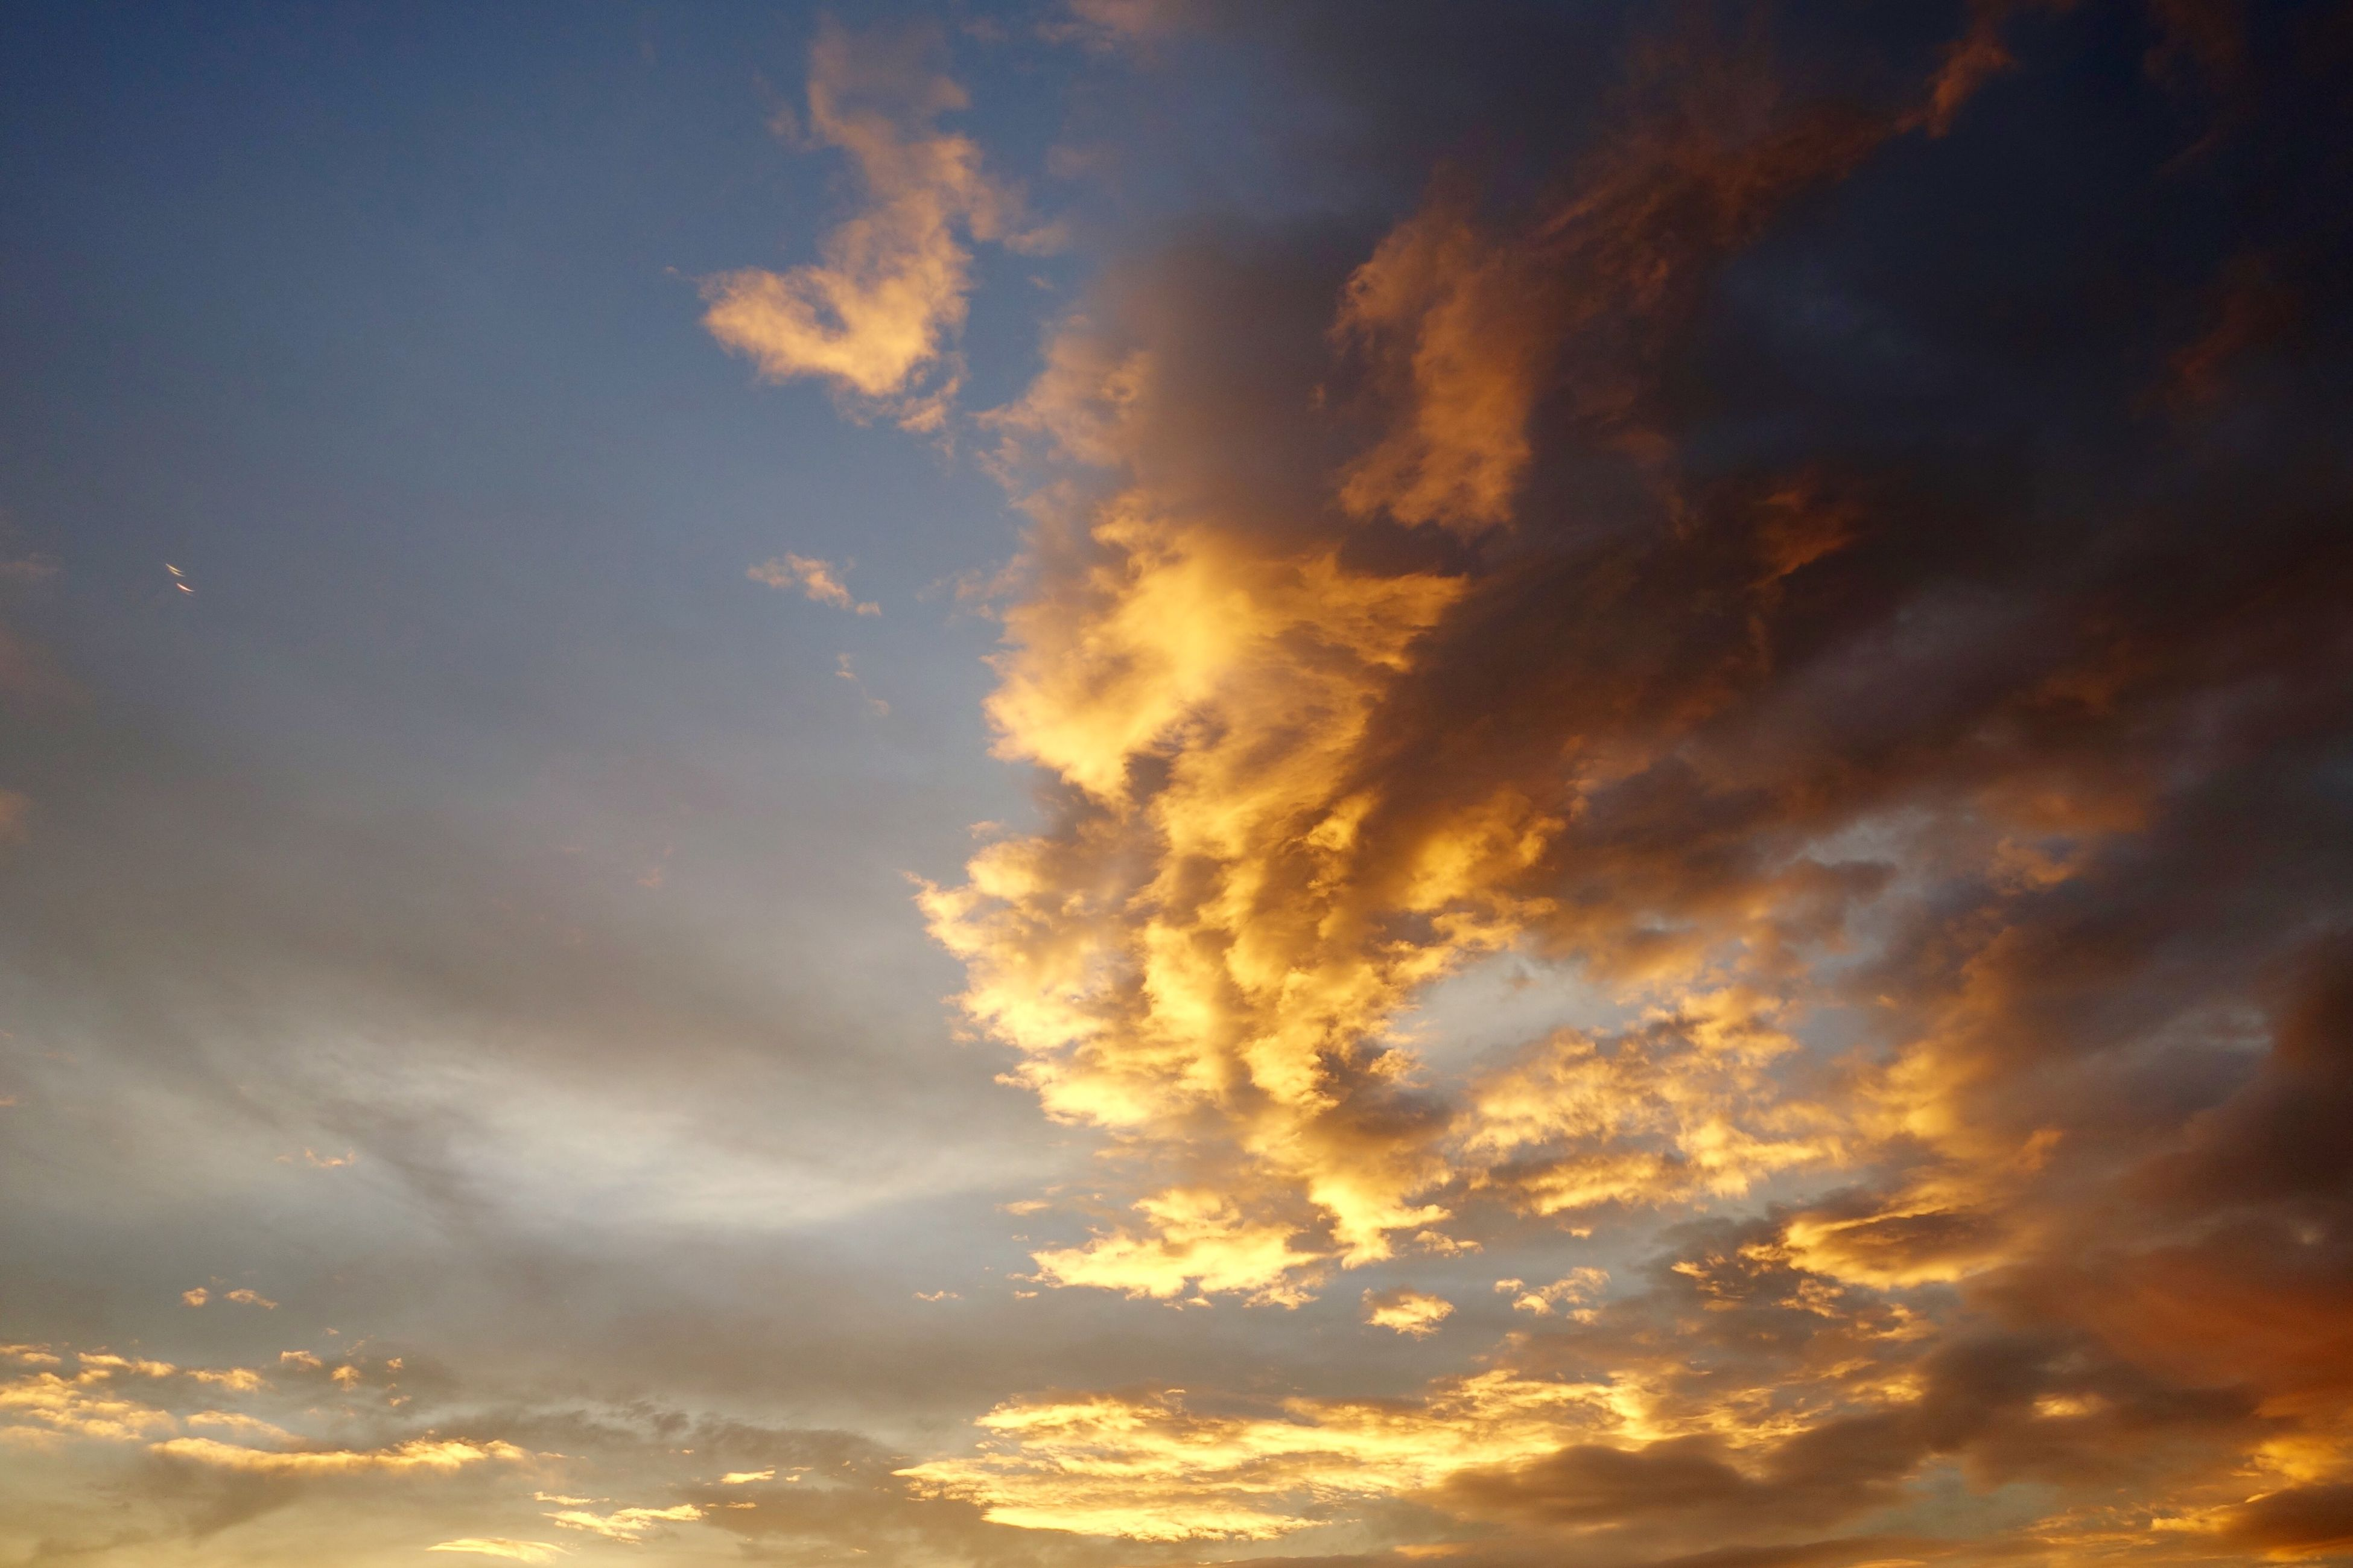 sky, sunset, cloud - sky, beauty in nature, scenics, tranquility, low angle view, tranquil scene, cloudy, sky only, cloudscape, nature, orange color, dramatic sky, idyllic, cloud, backgrounds, majestic, weather, silhouette